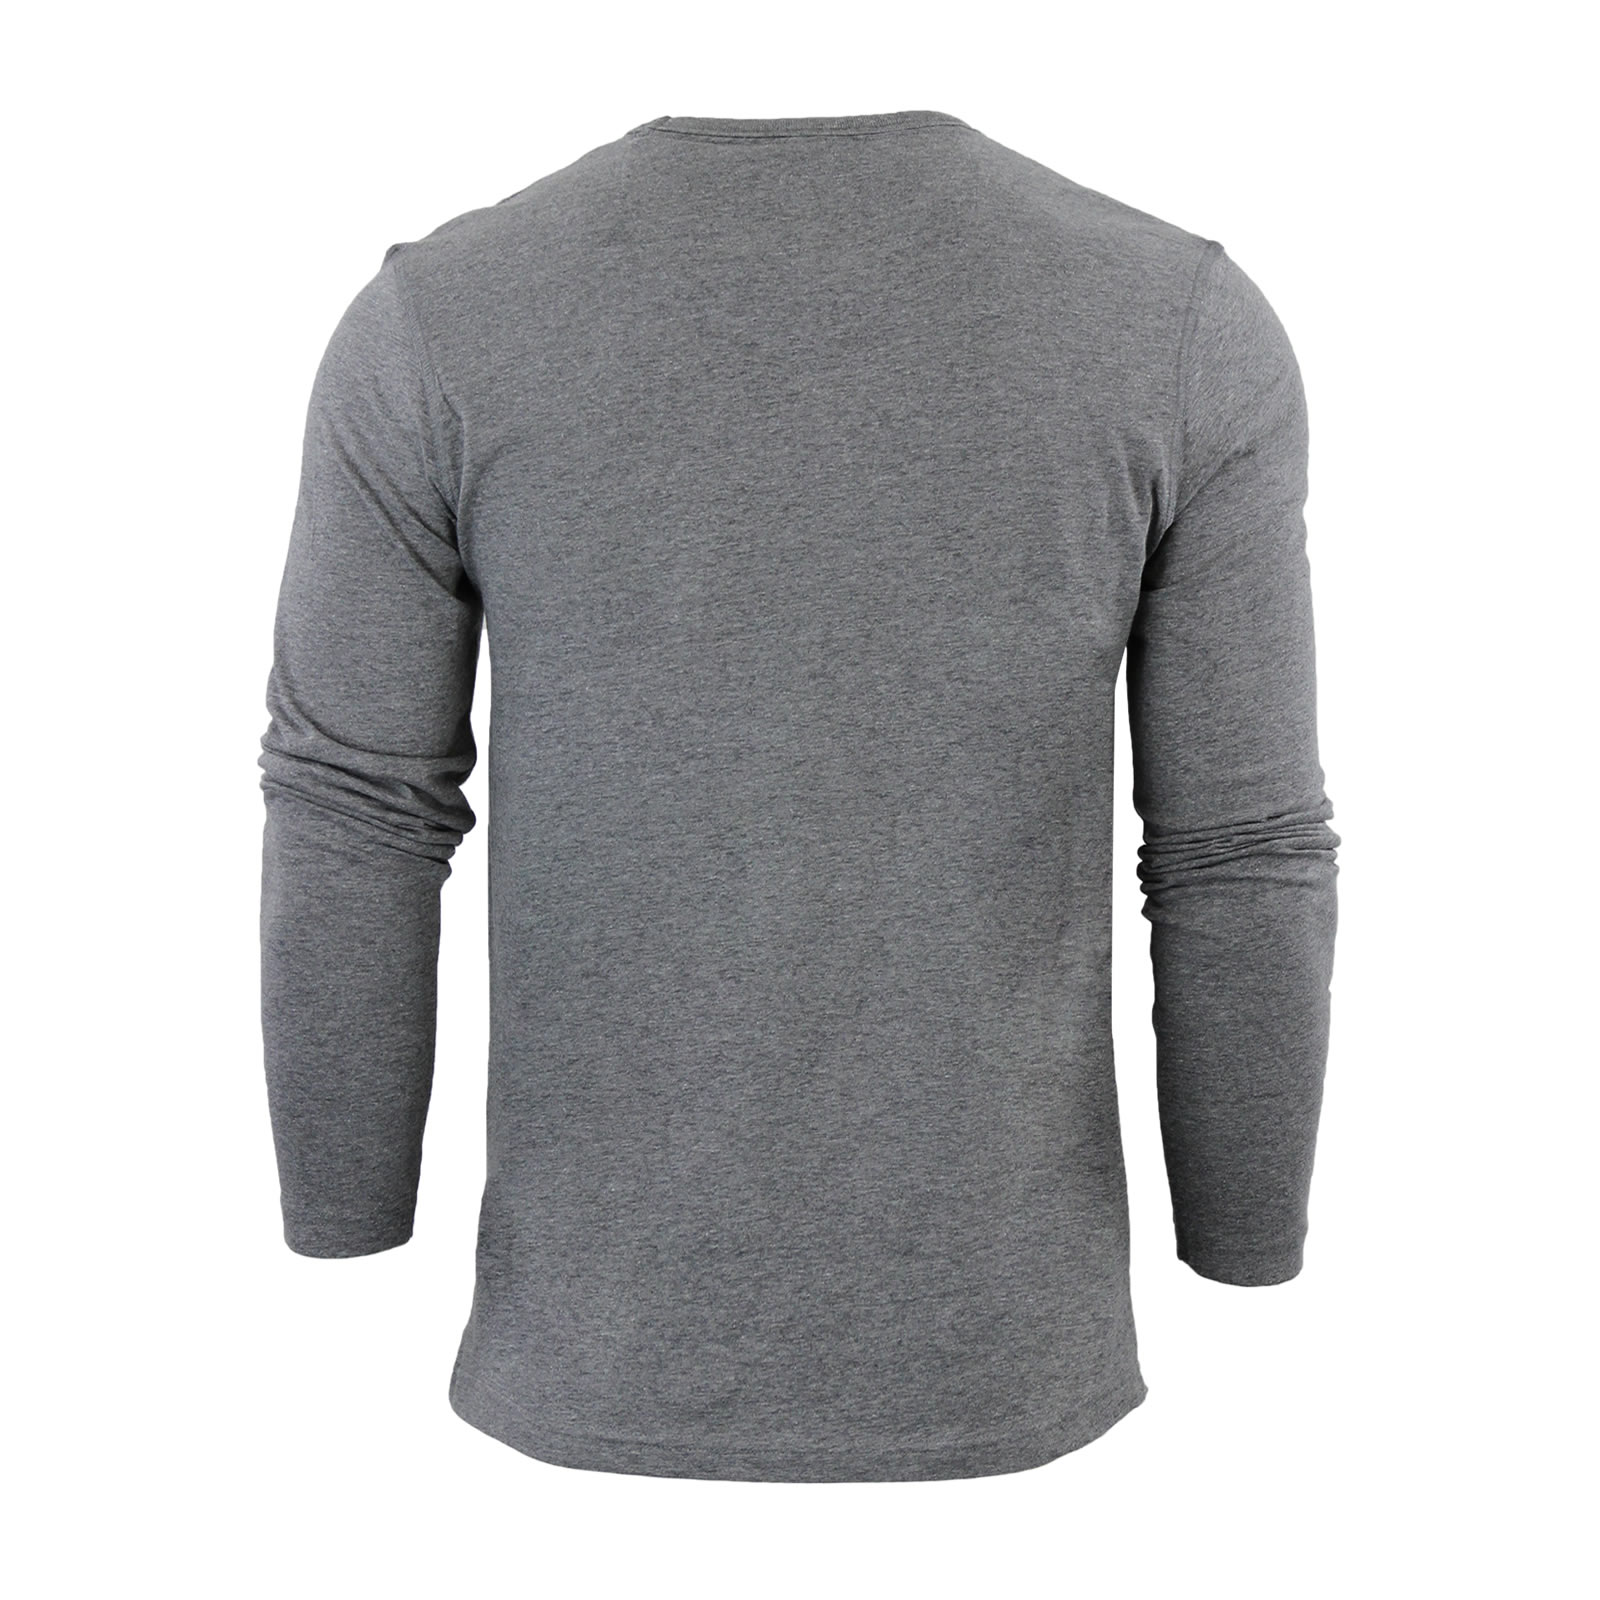 T-shirt-homme-par-brave-soul-prague-en-coton-a-encolure-ras-du-cou-a-manches-longues-top-casual miniature 15